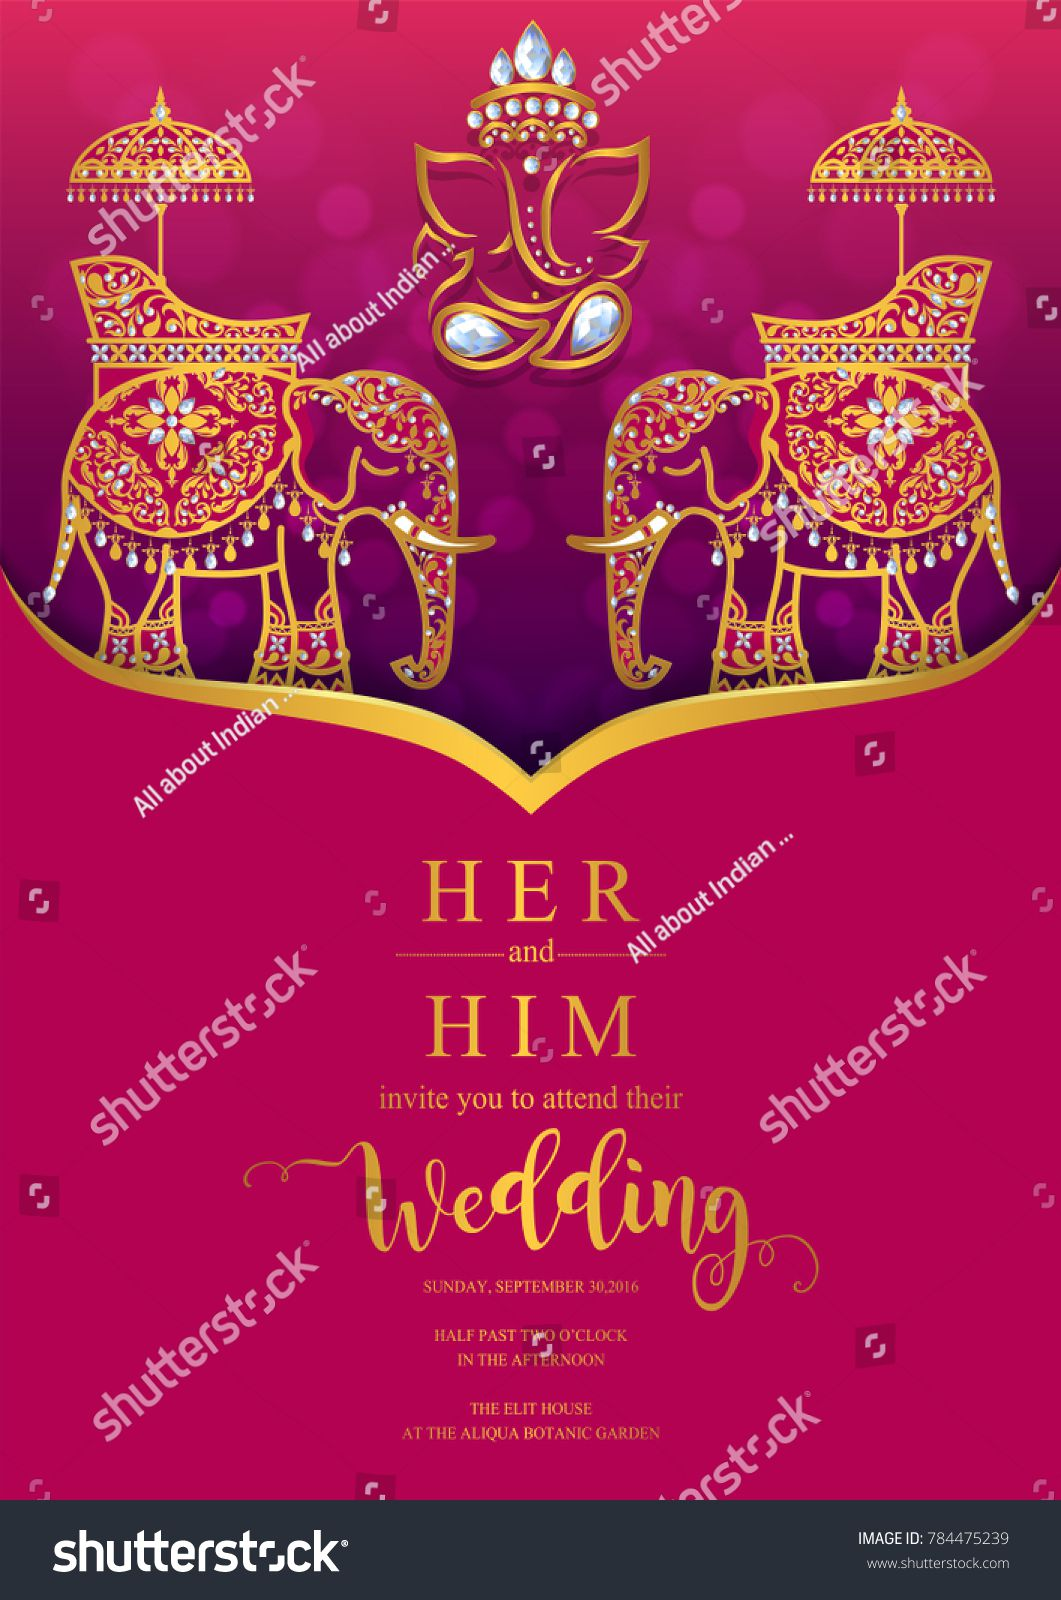 009 Formidable Indian Wedding Invitation Template Inspiration  Psd Free Download Marriage Online For FriendFull